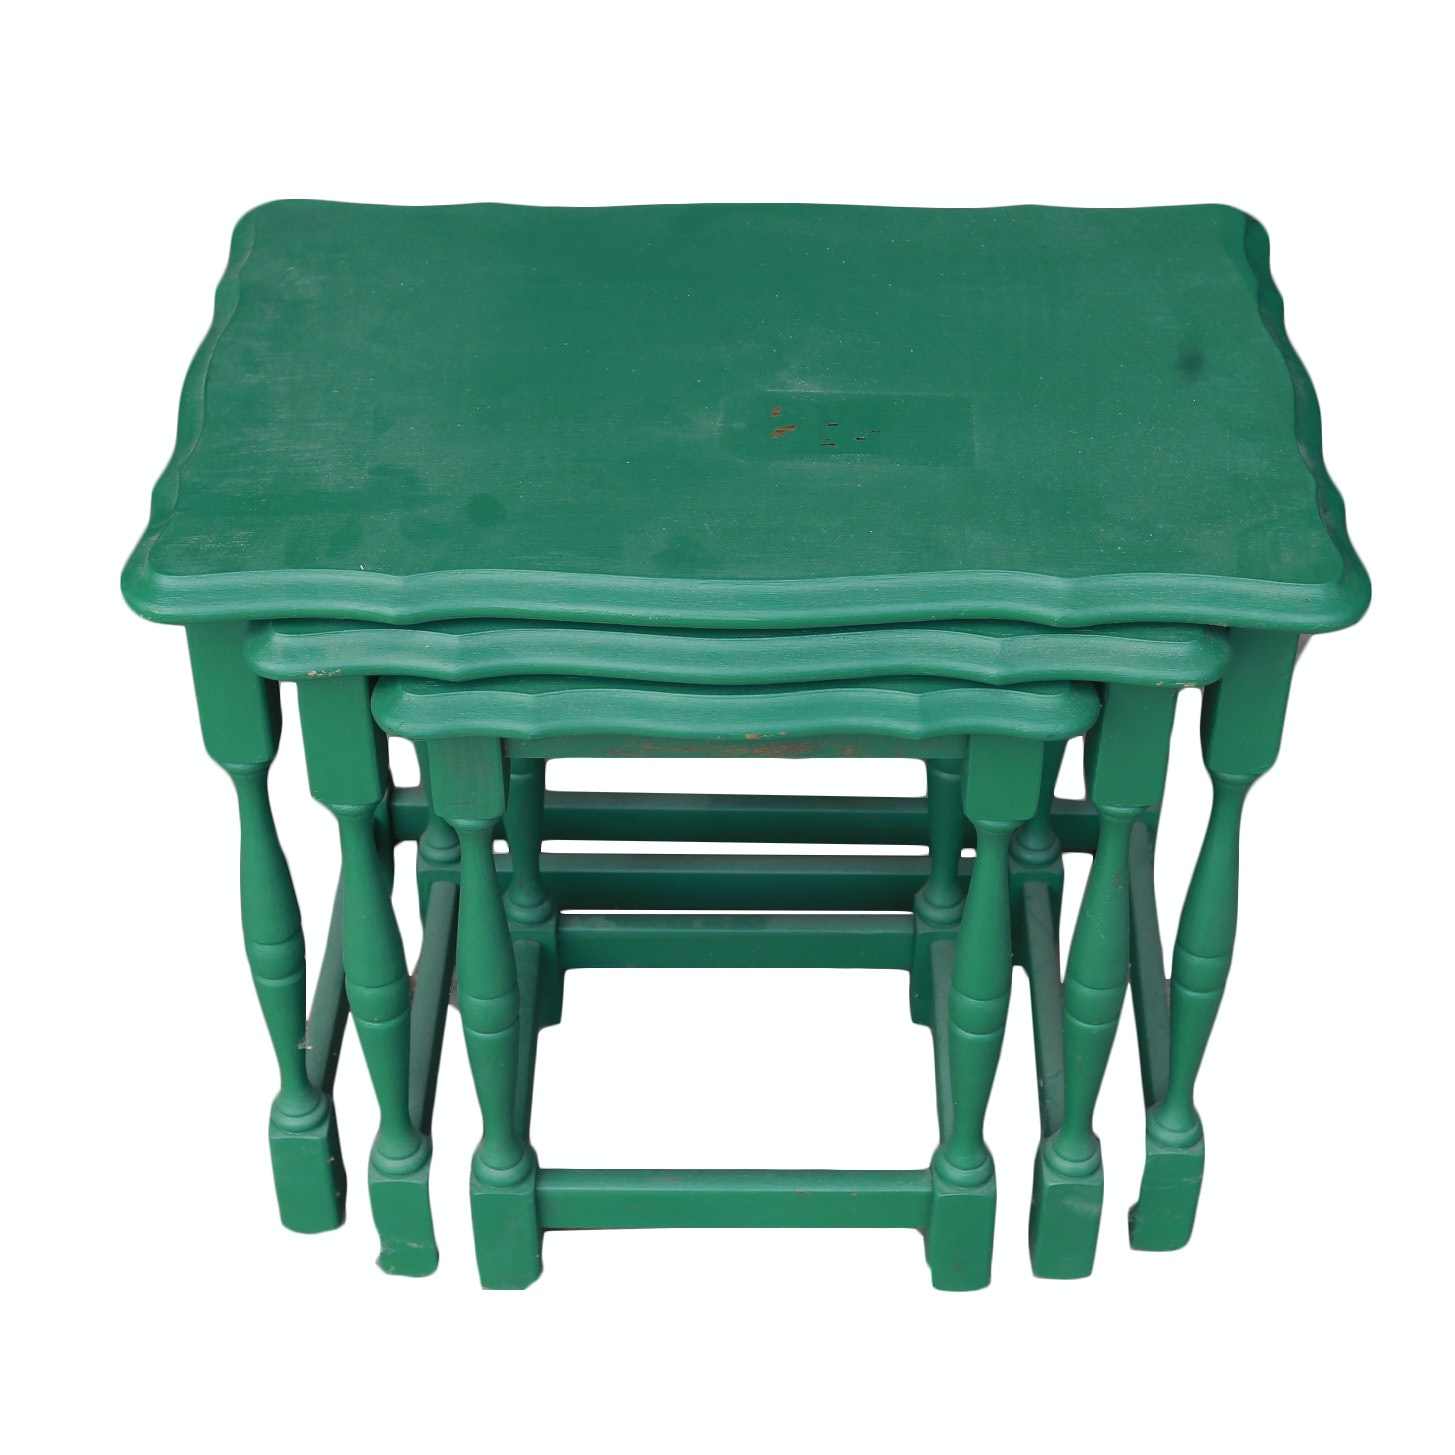 Teal-Painted Nesting Tables